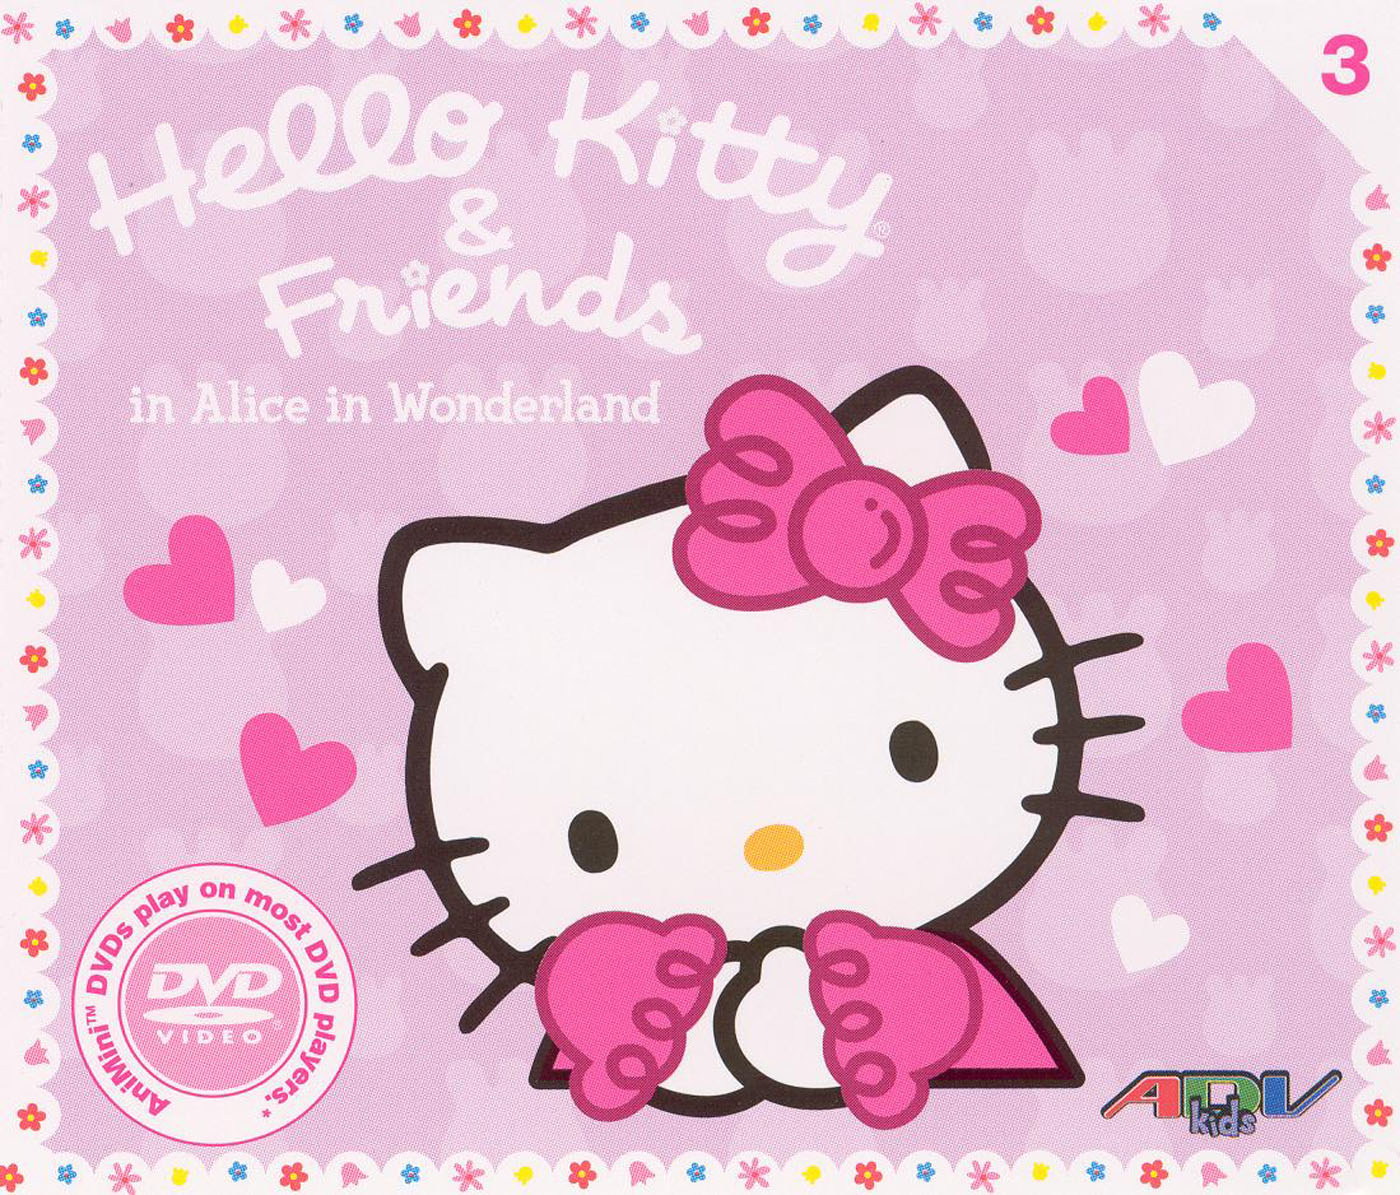 Hello Kitty & Friends: Pekkle in the Adventures of Sinbad